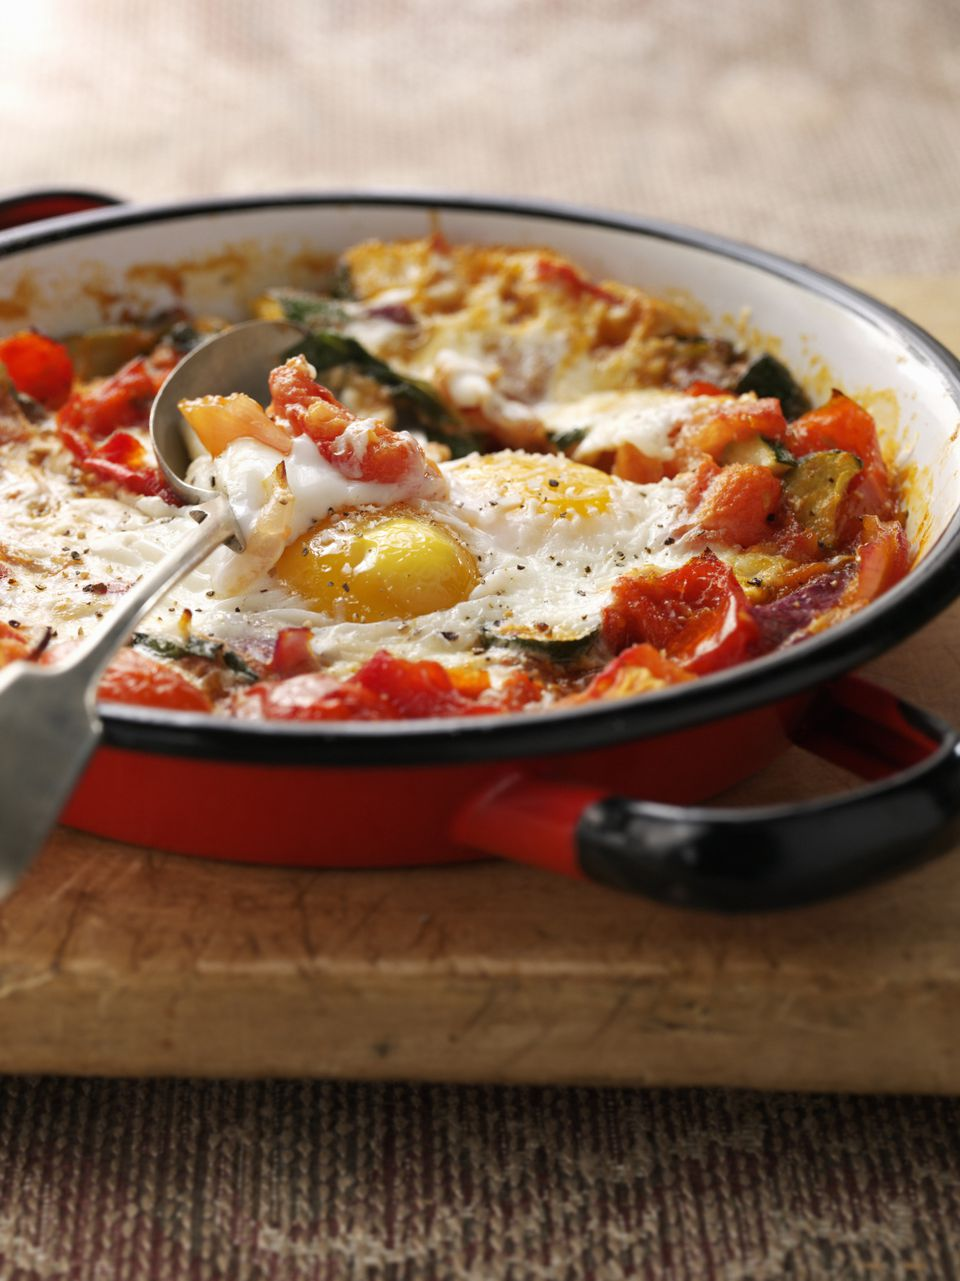 Spanish baked eggs recipe